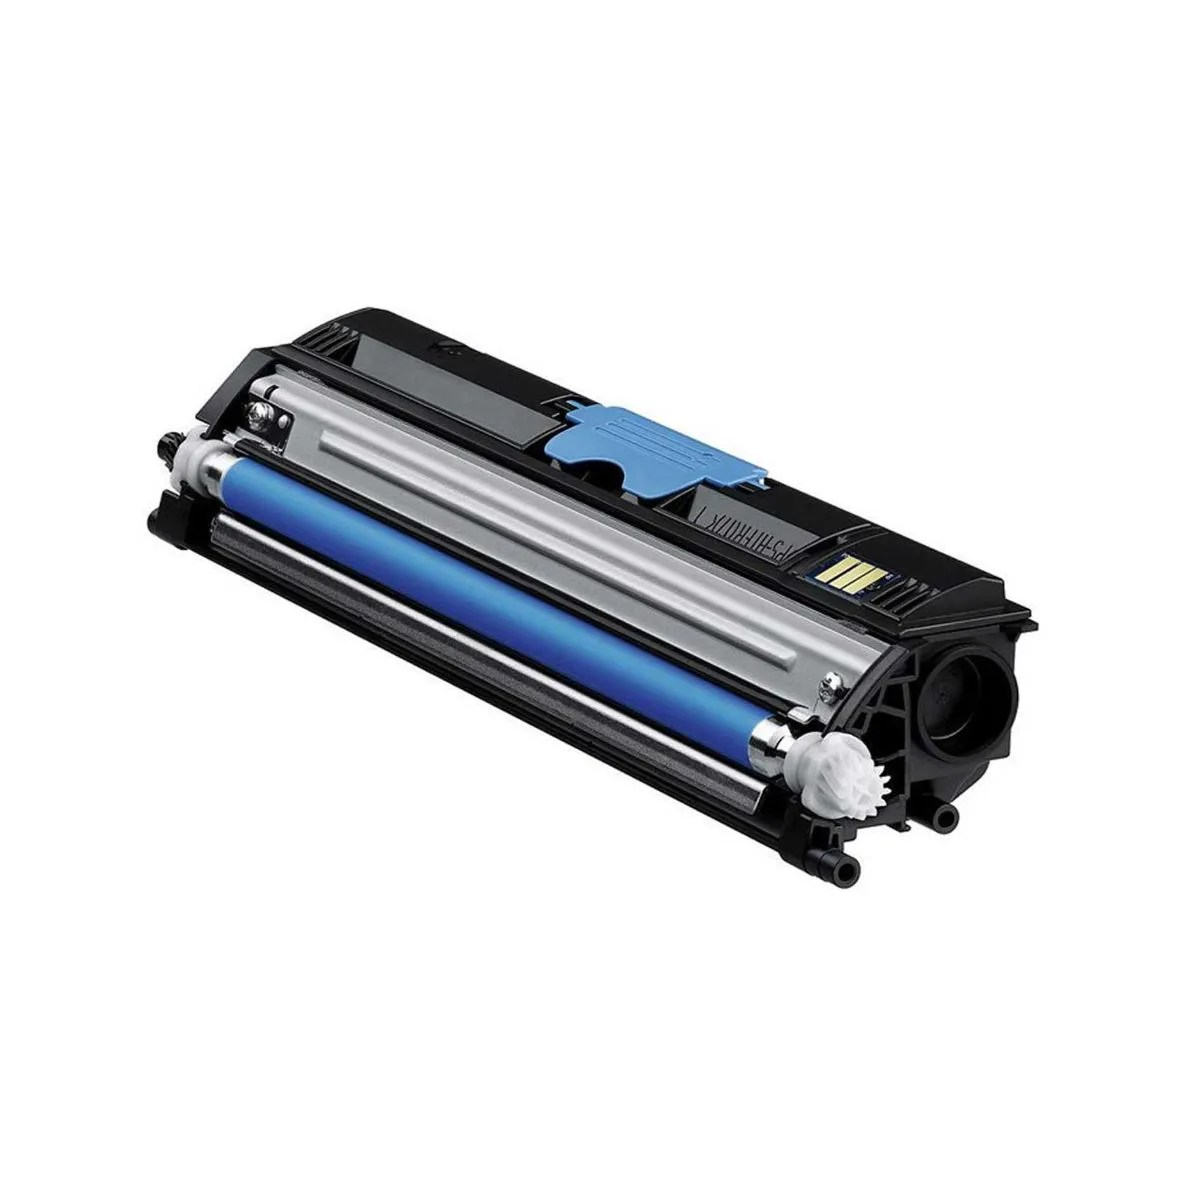 Tonner For Printer Konica A0v30gh Printer Ink Toner Cartridge Cyan Ogen